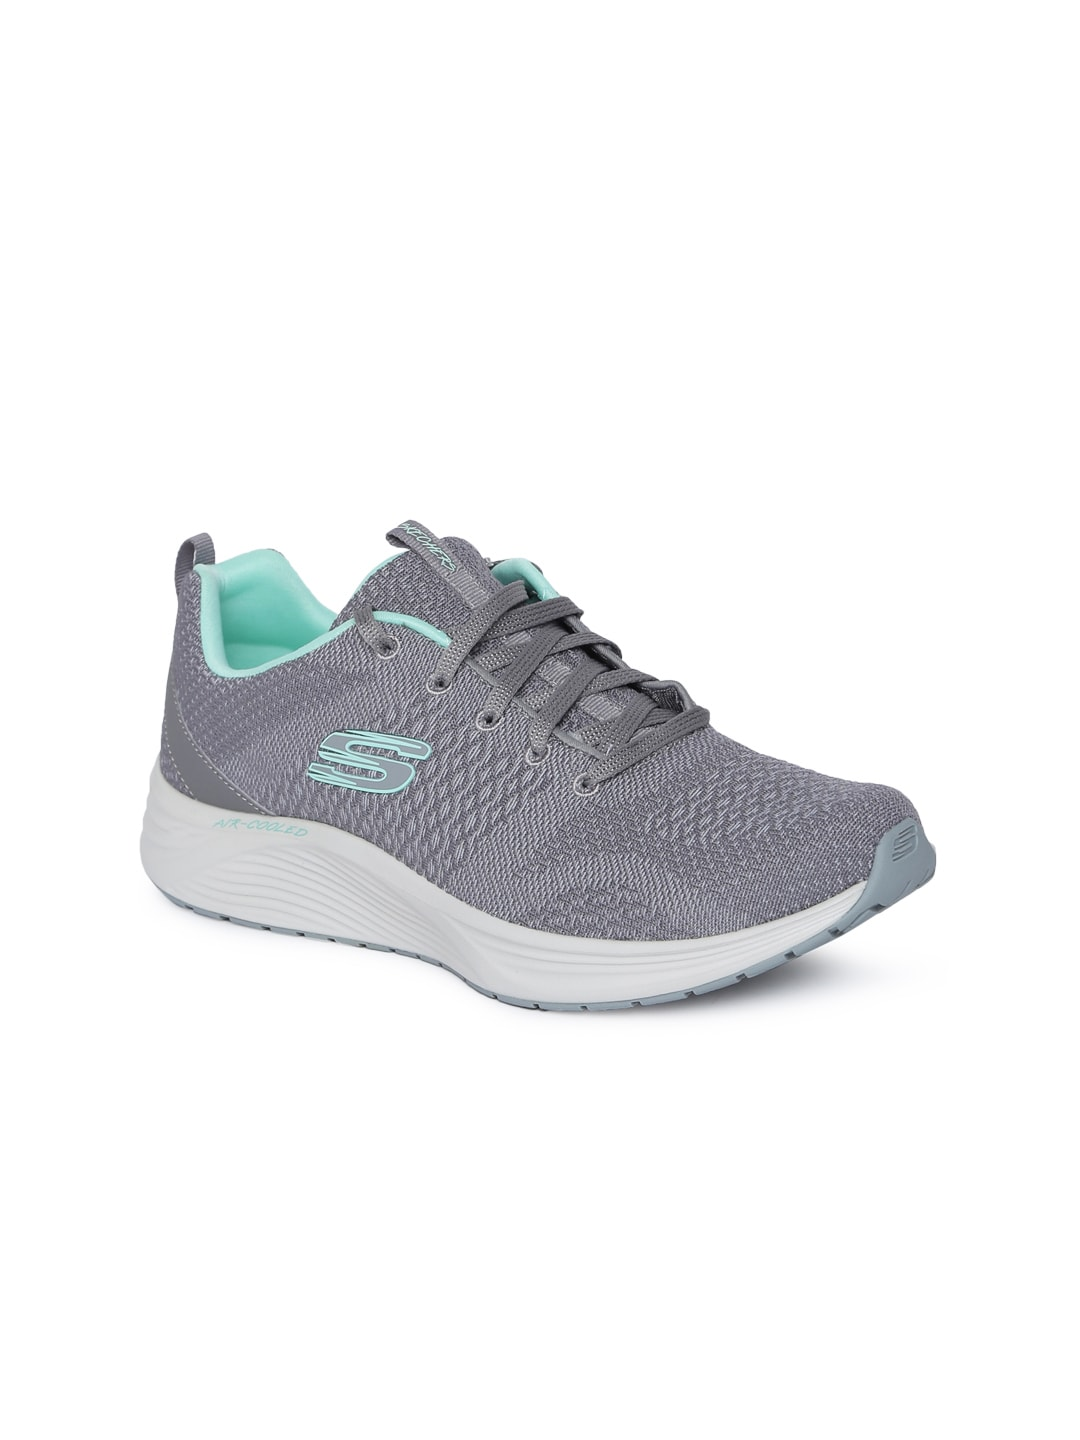 Women Grey Sneakers Surefire Skyline Skechers fg7Yy6b